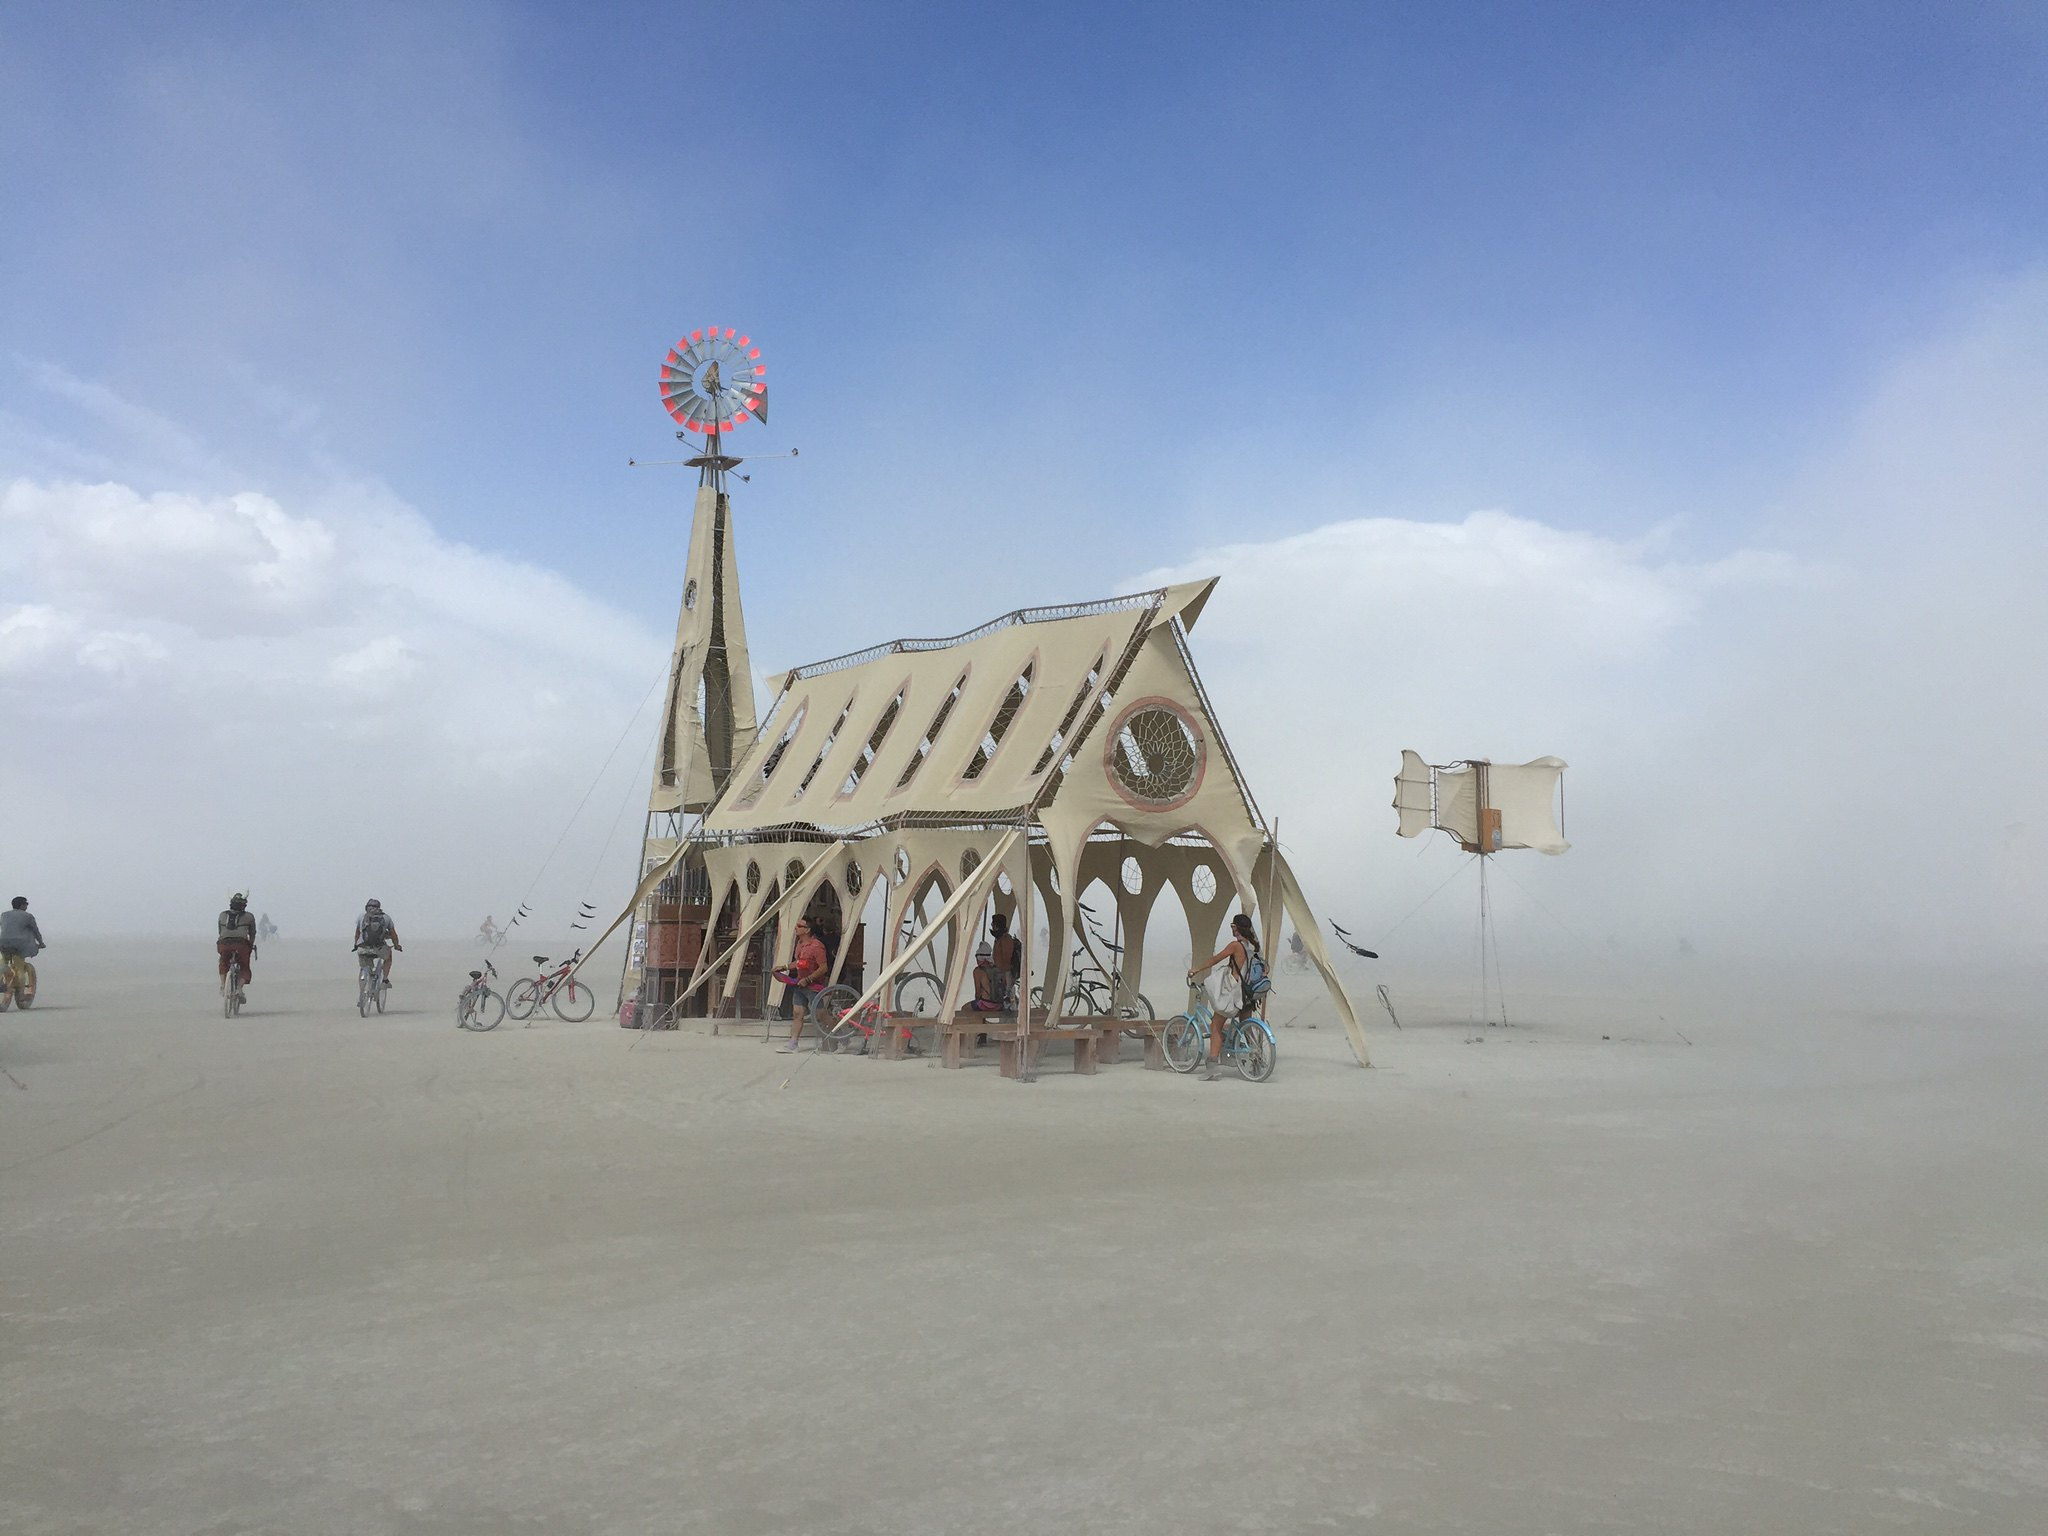 Day six: A look at the art and architecture of Burning Man